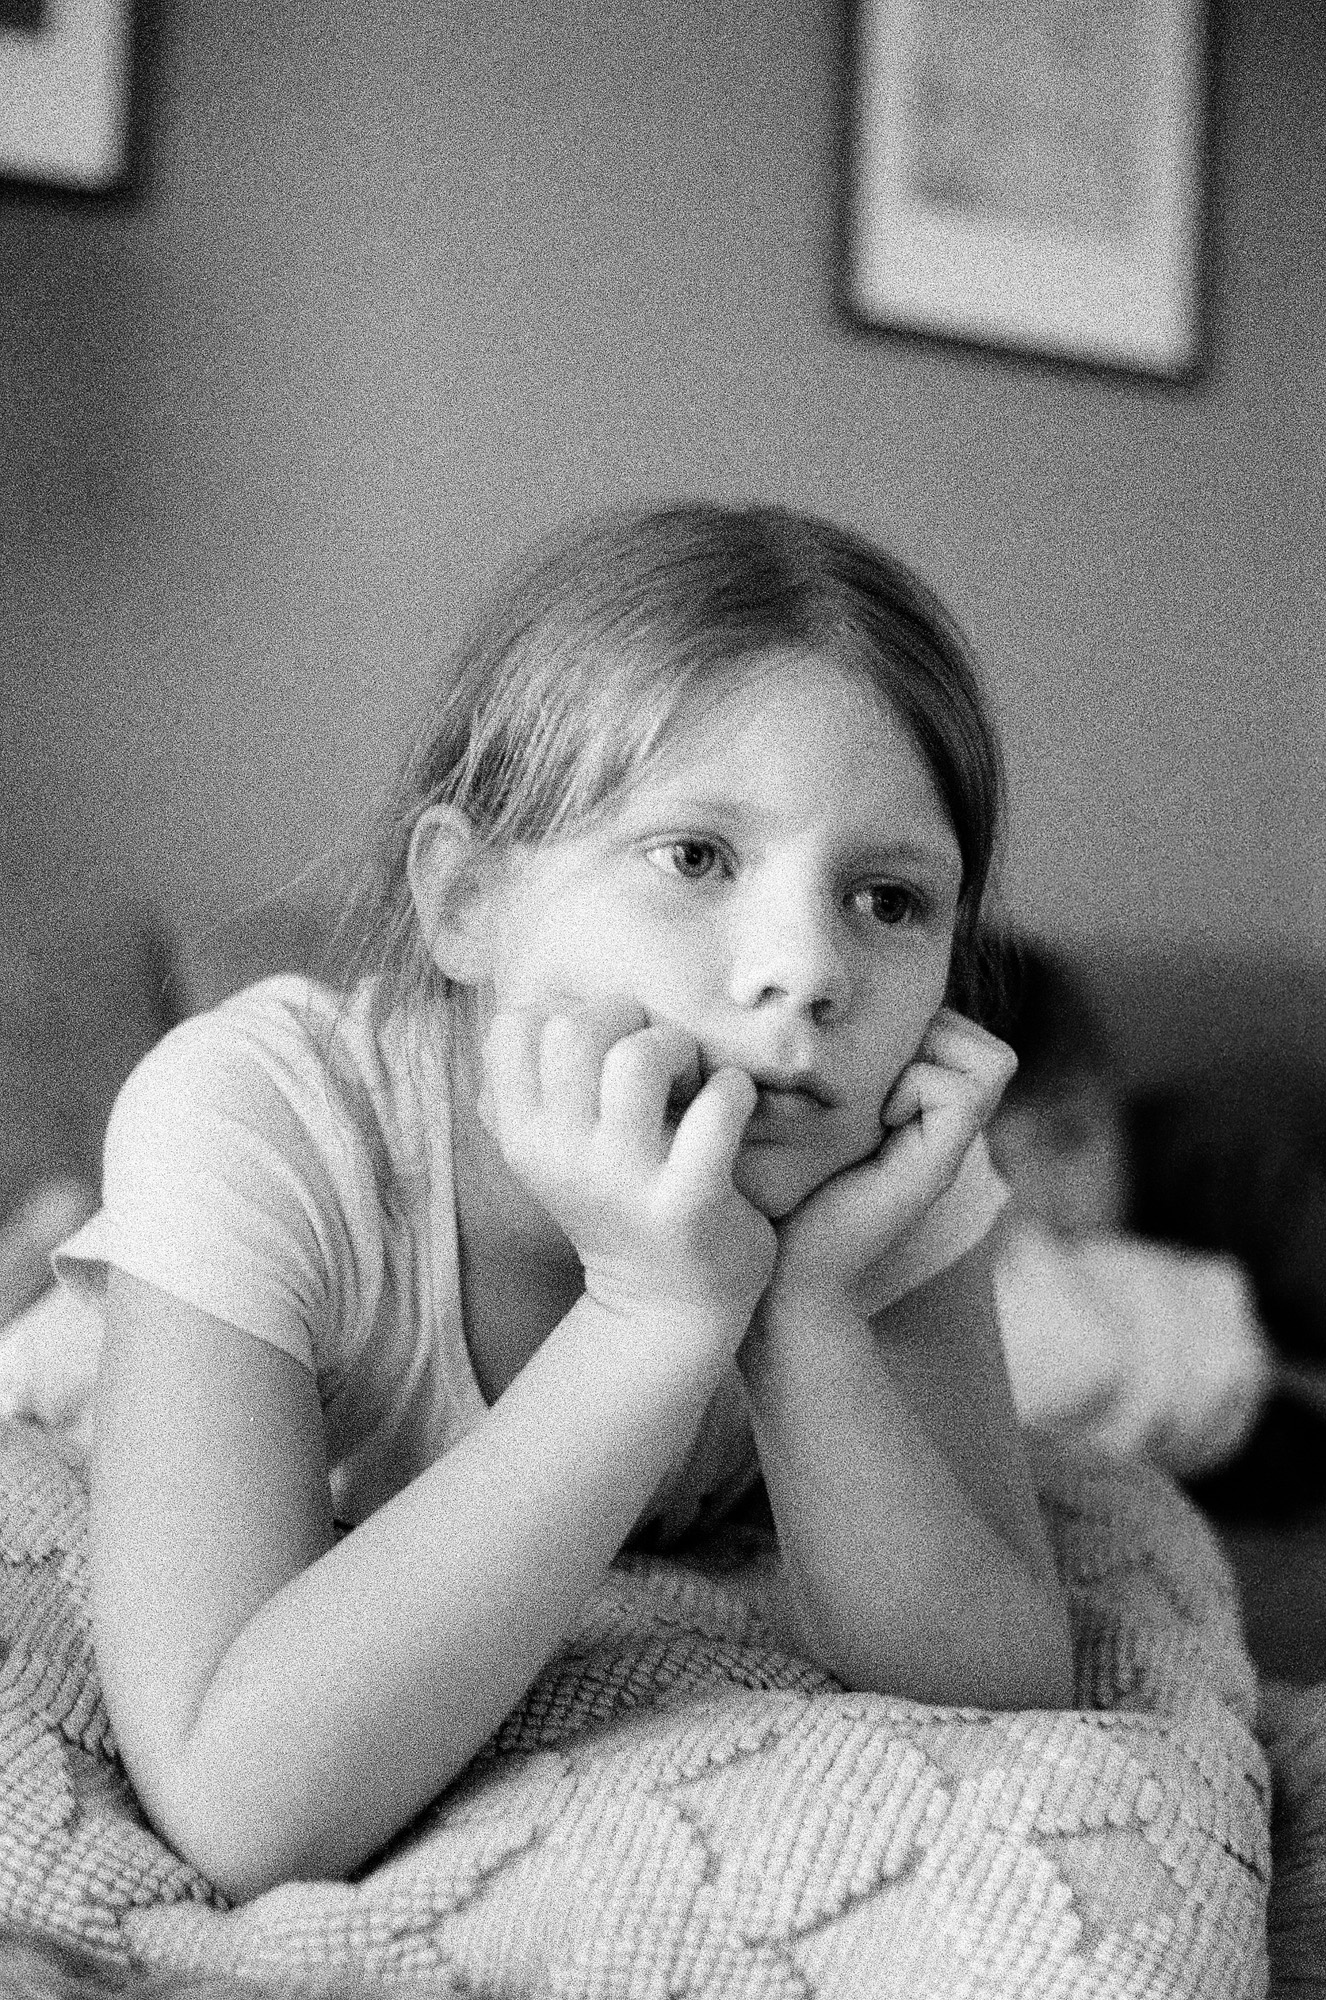 daydreaming :: analoge portret fotografie foto-rv